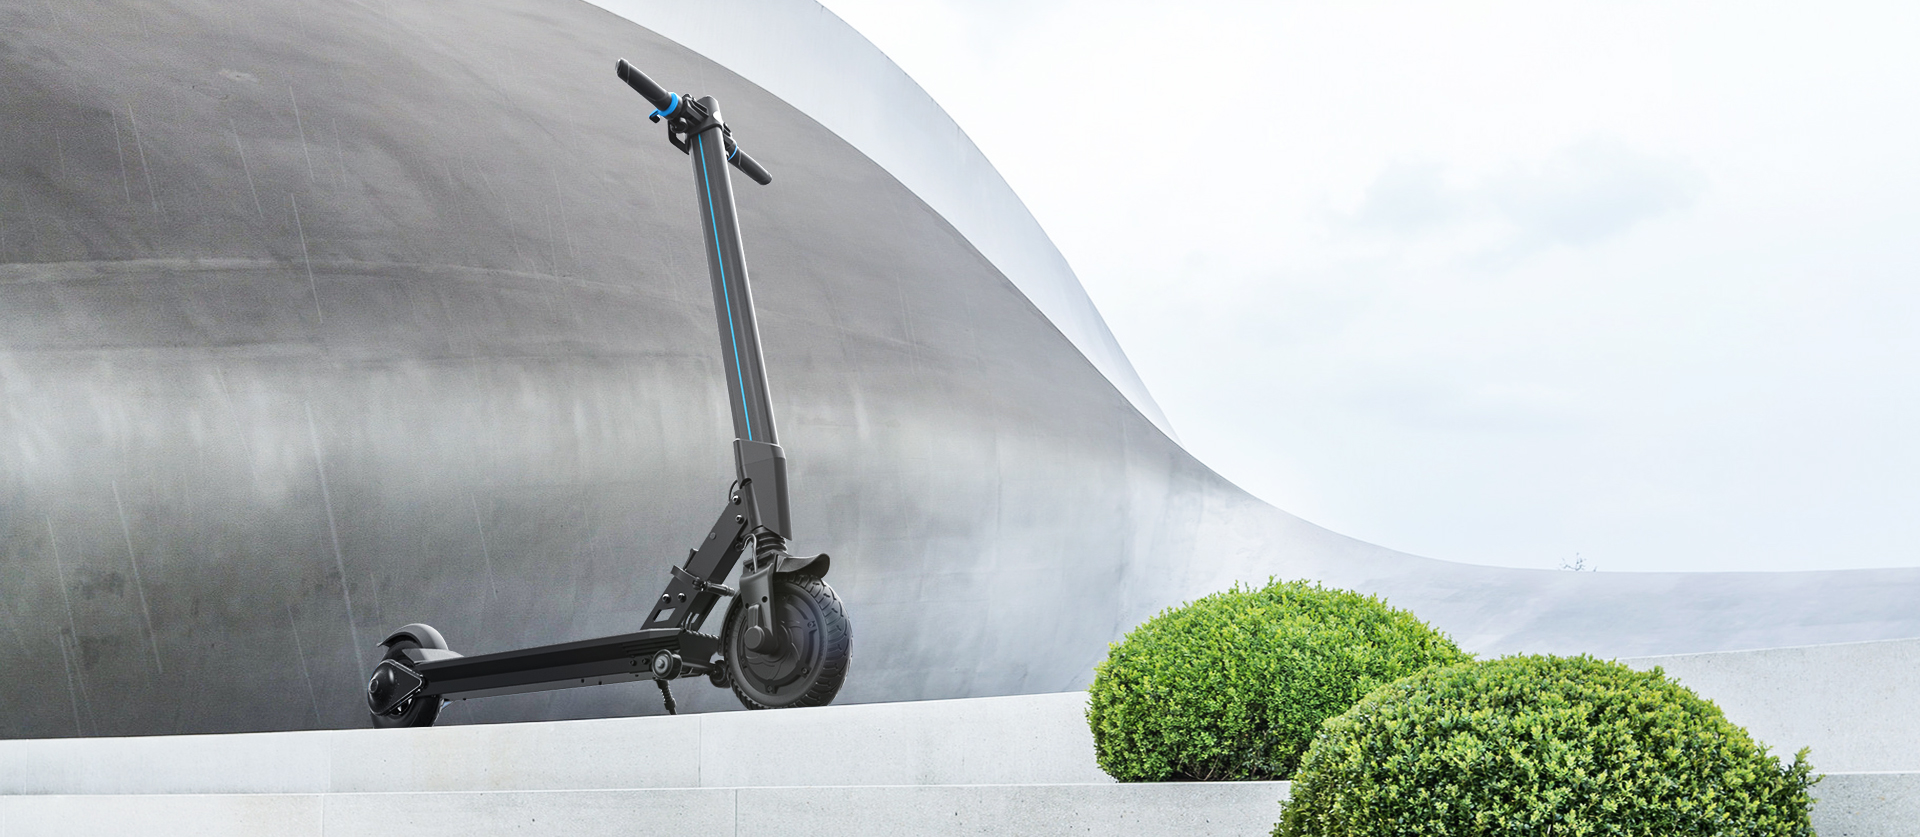 INMOTION E-Scooter L8/L8F integrates scientific technologies and vogue. The entire body is composed of concise clear lines and eye-catching symbols, impressing you at first glance.